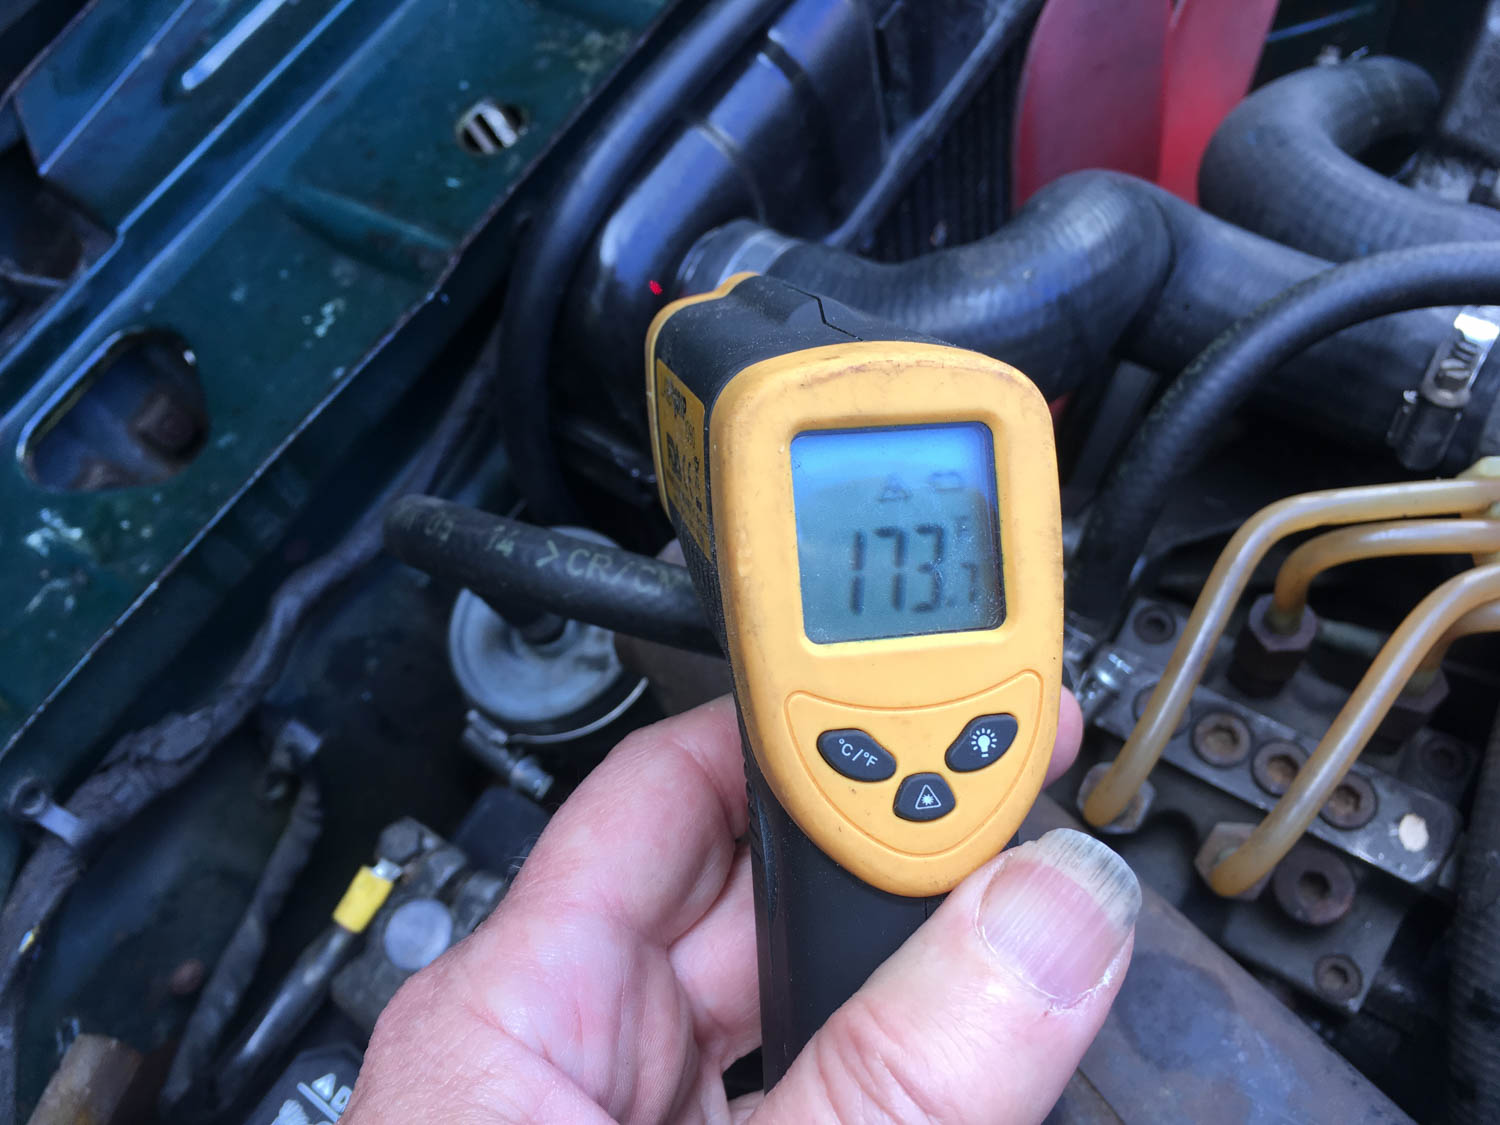 Infrared temperature guns are popular, but you really need to use them before you have trouble in order to get a baseline on what the temperature should be. This is on the upper radiator tank of a barely warmed-up car.